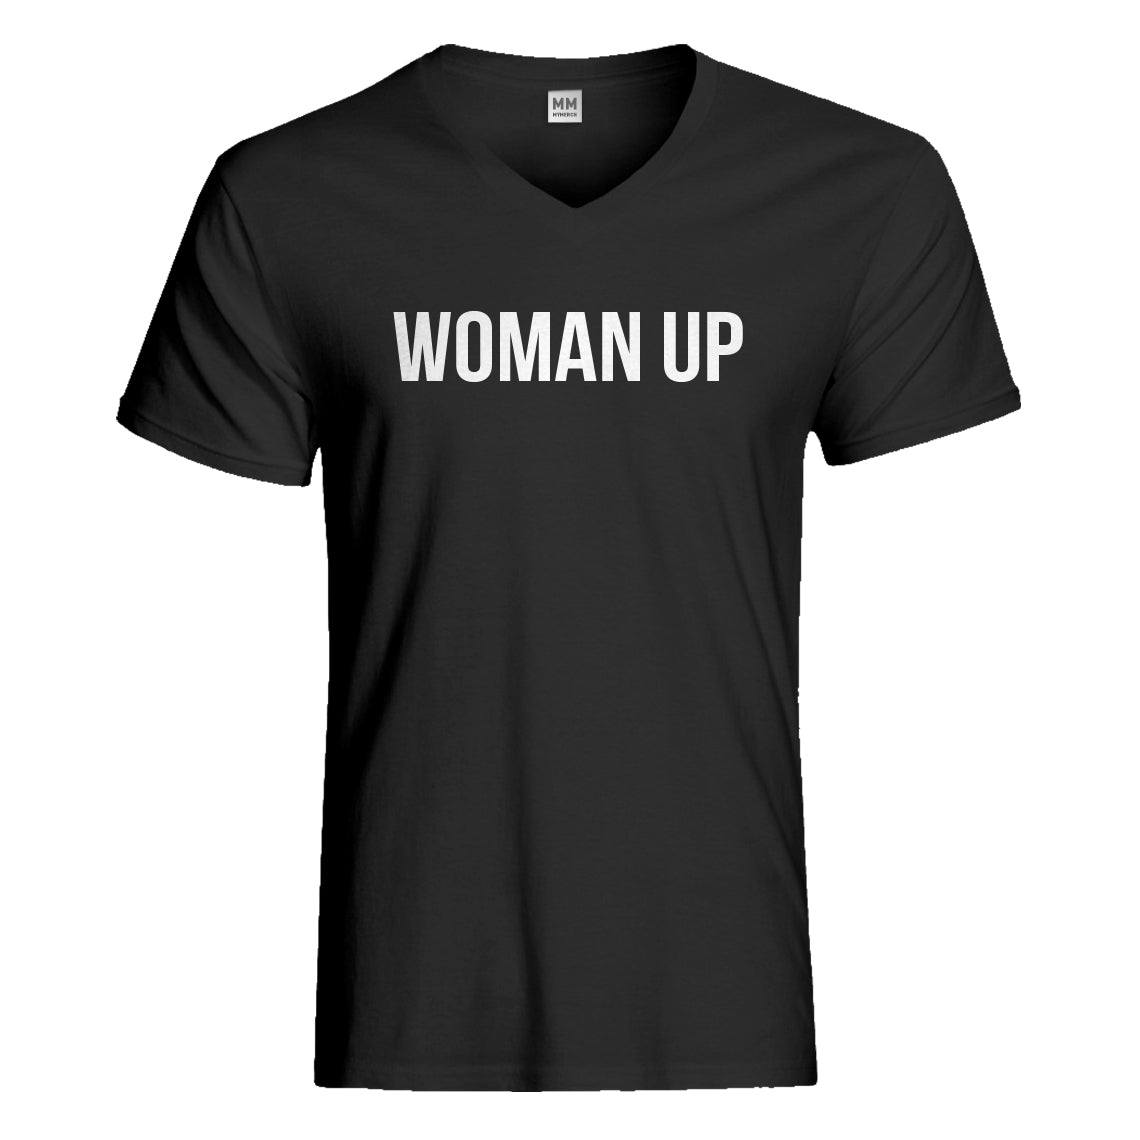 Mens Woman Up Vneck T-shirt